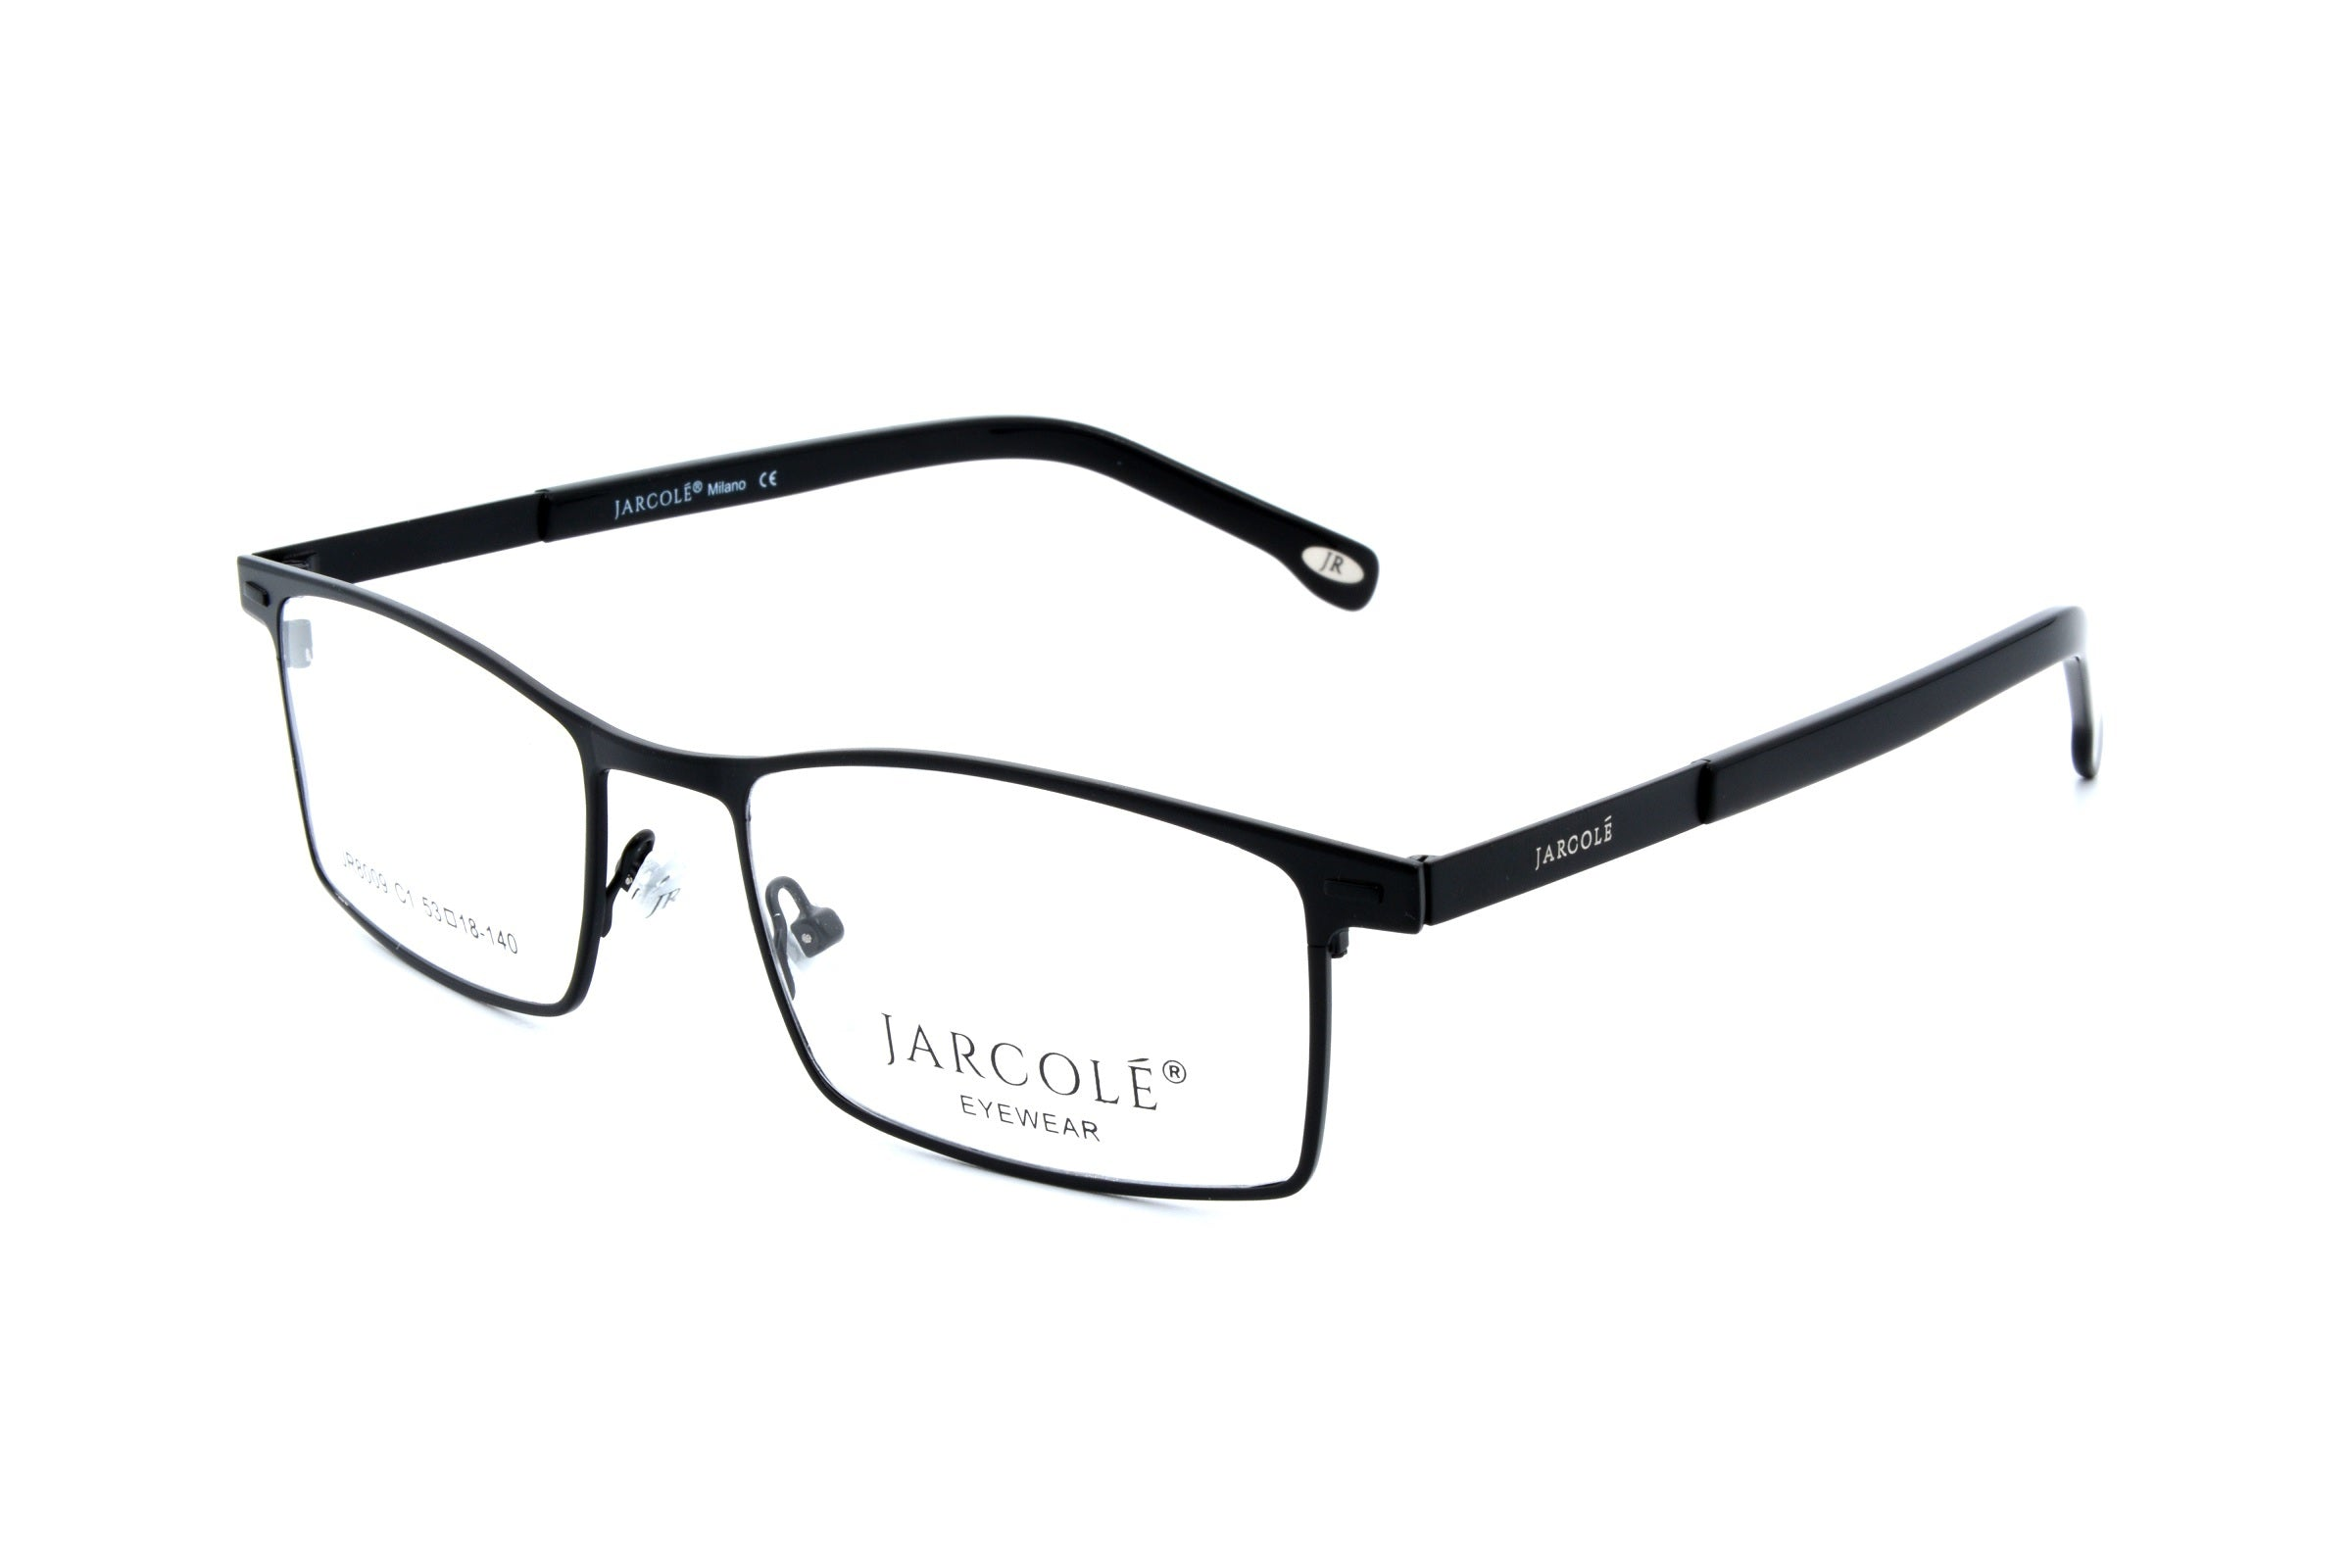 Jarcole eyewear 8009, C1 - Optics Trading